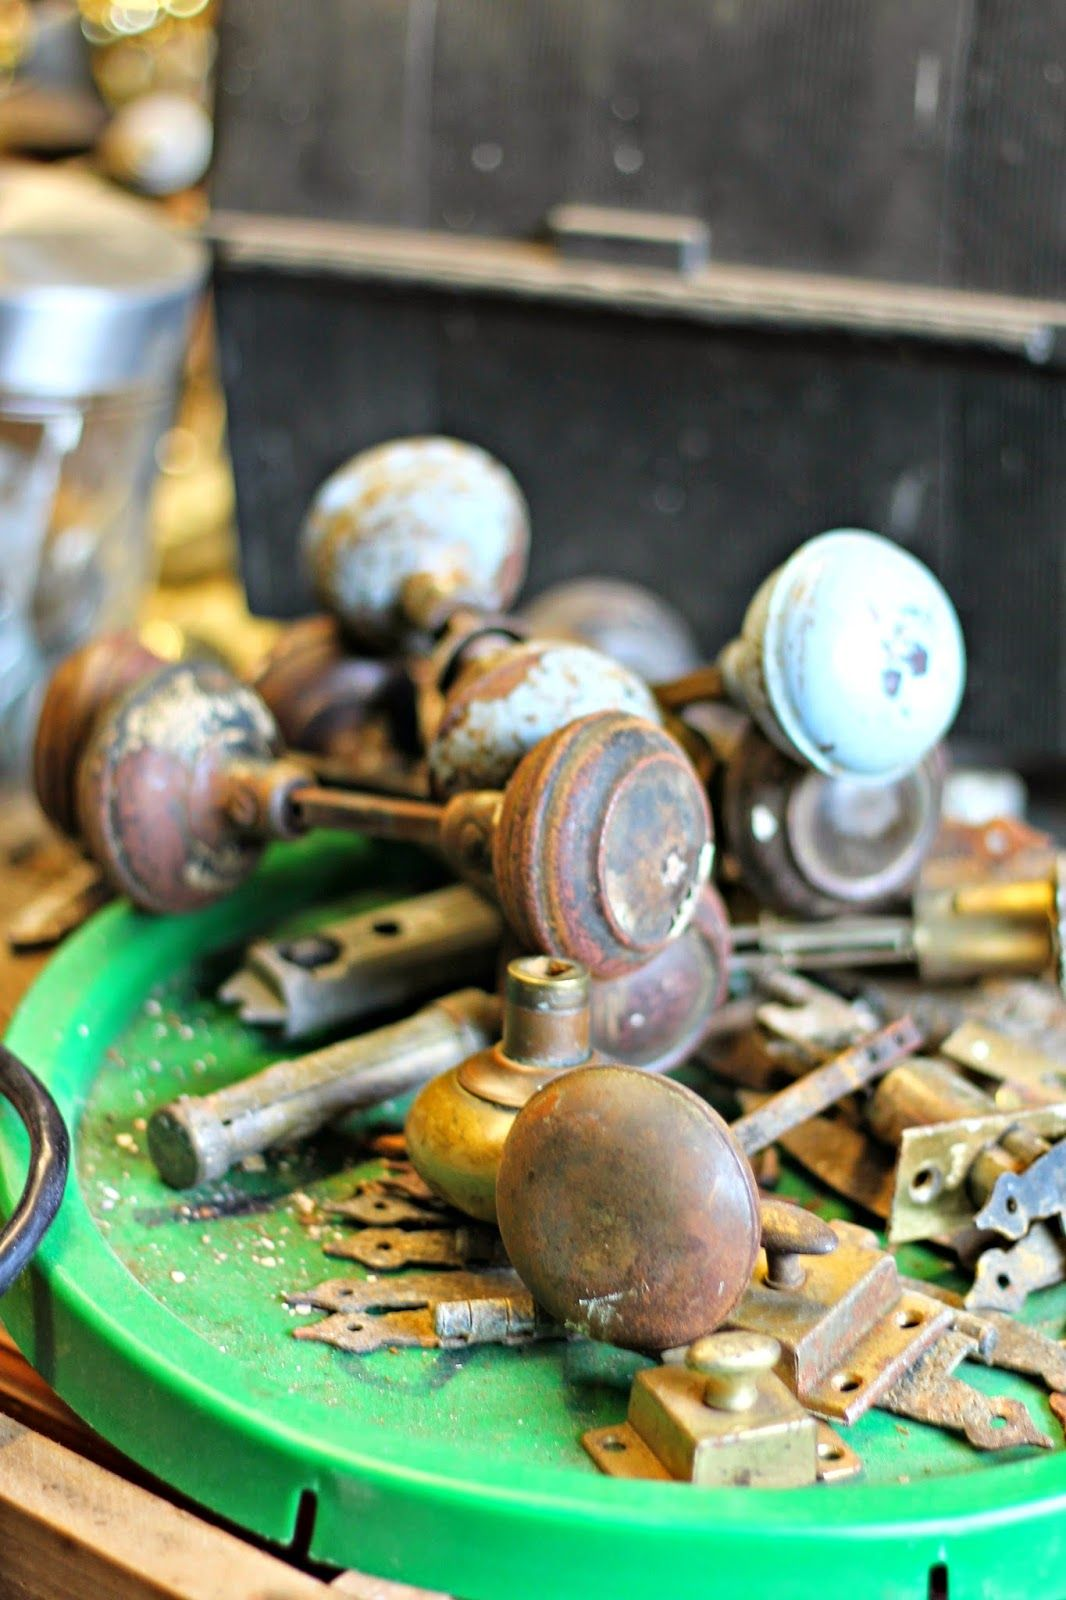 Find a treasure at old house salvage near greenville sc